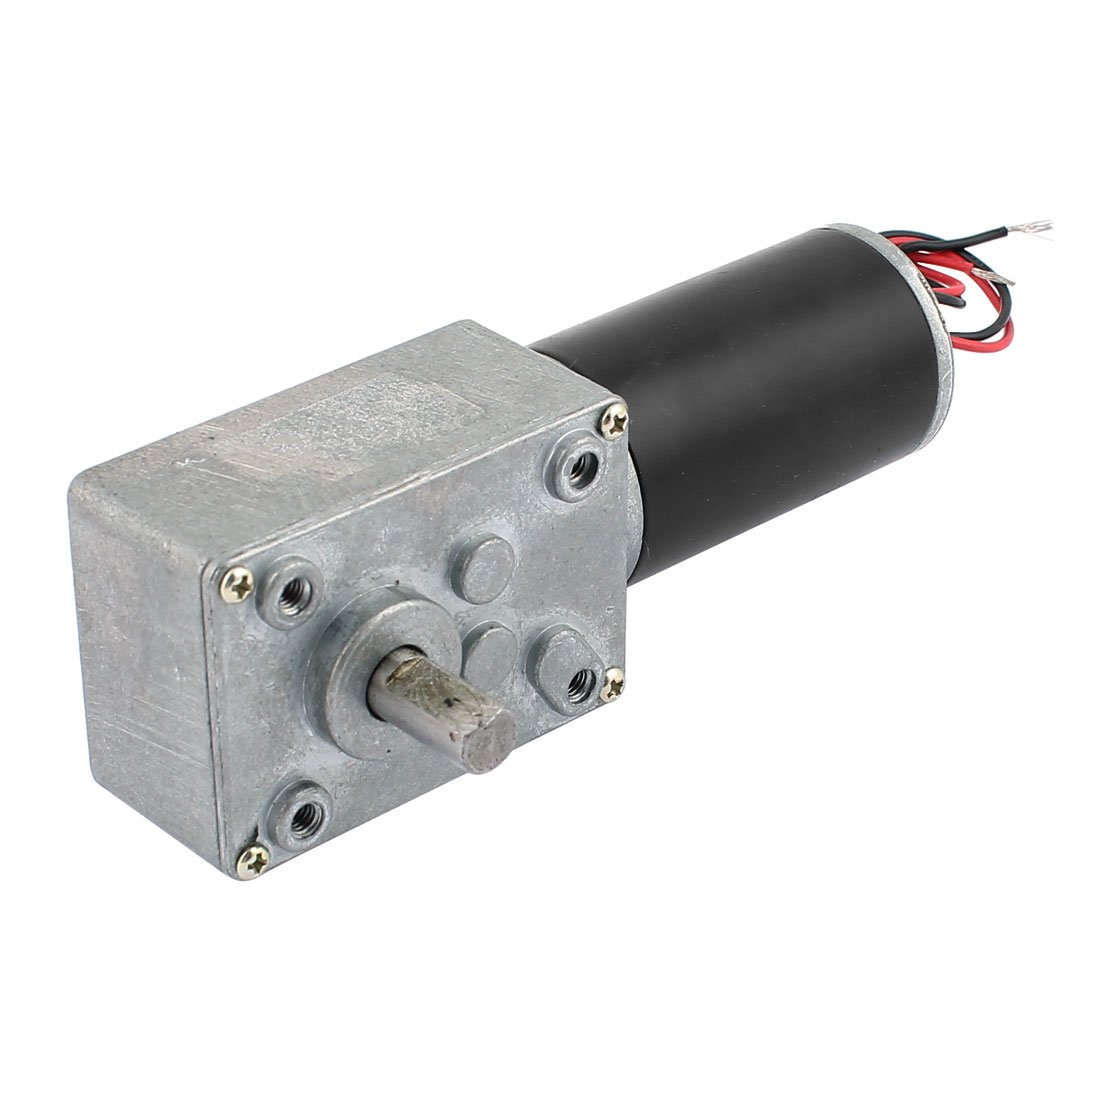 uxcell DC 12V 10RPM 8mmx15mm Dual D-Shape Shaft Electric Power Turbo Worm Geared Motor